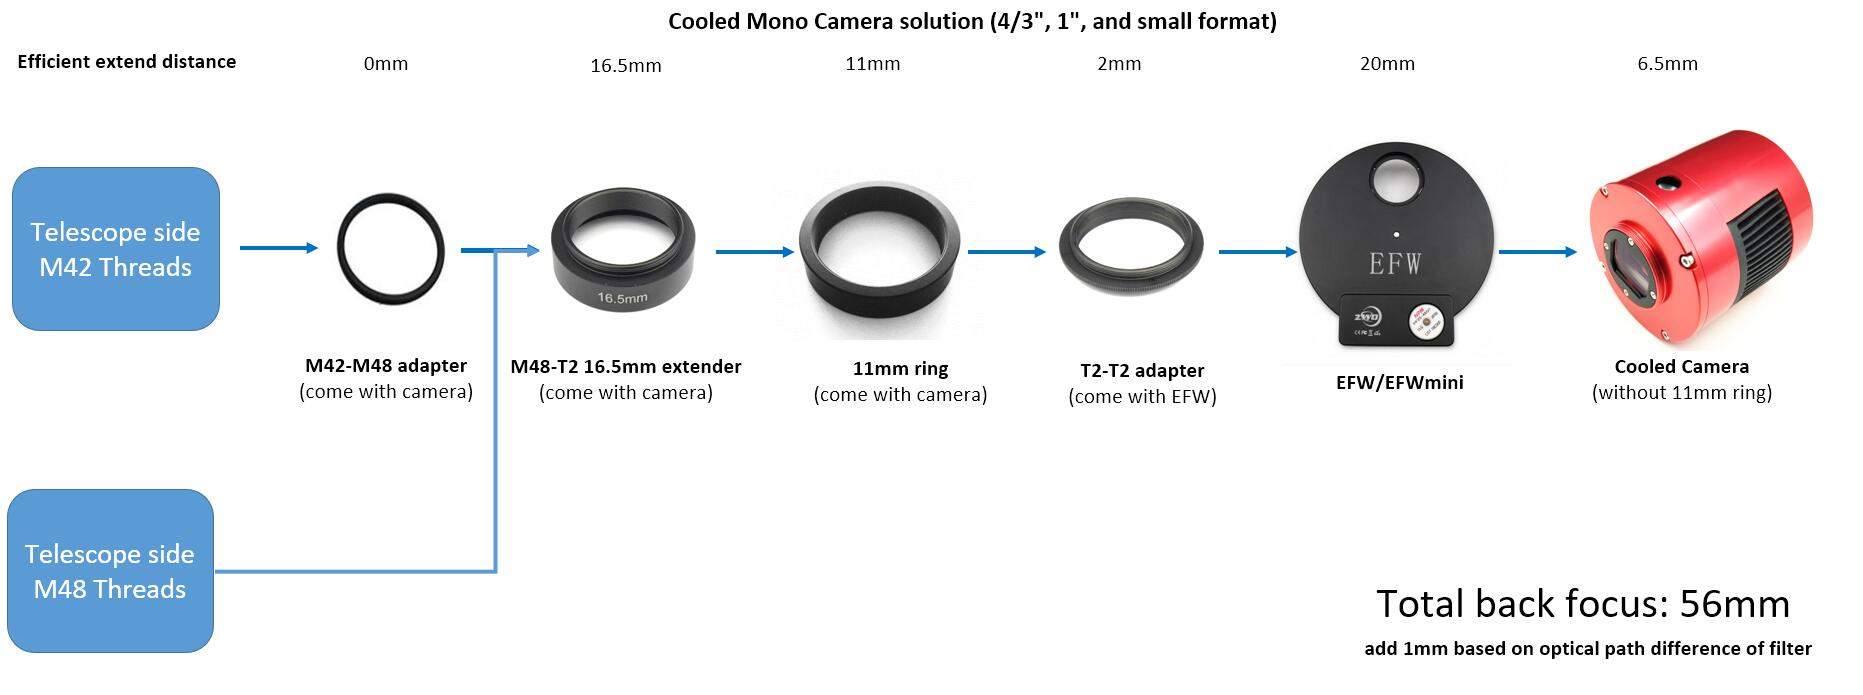 Cooled-Mono-Camera-solution.jpg